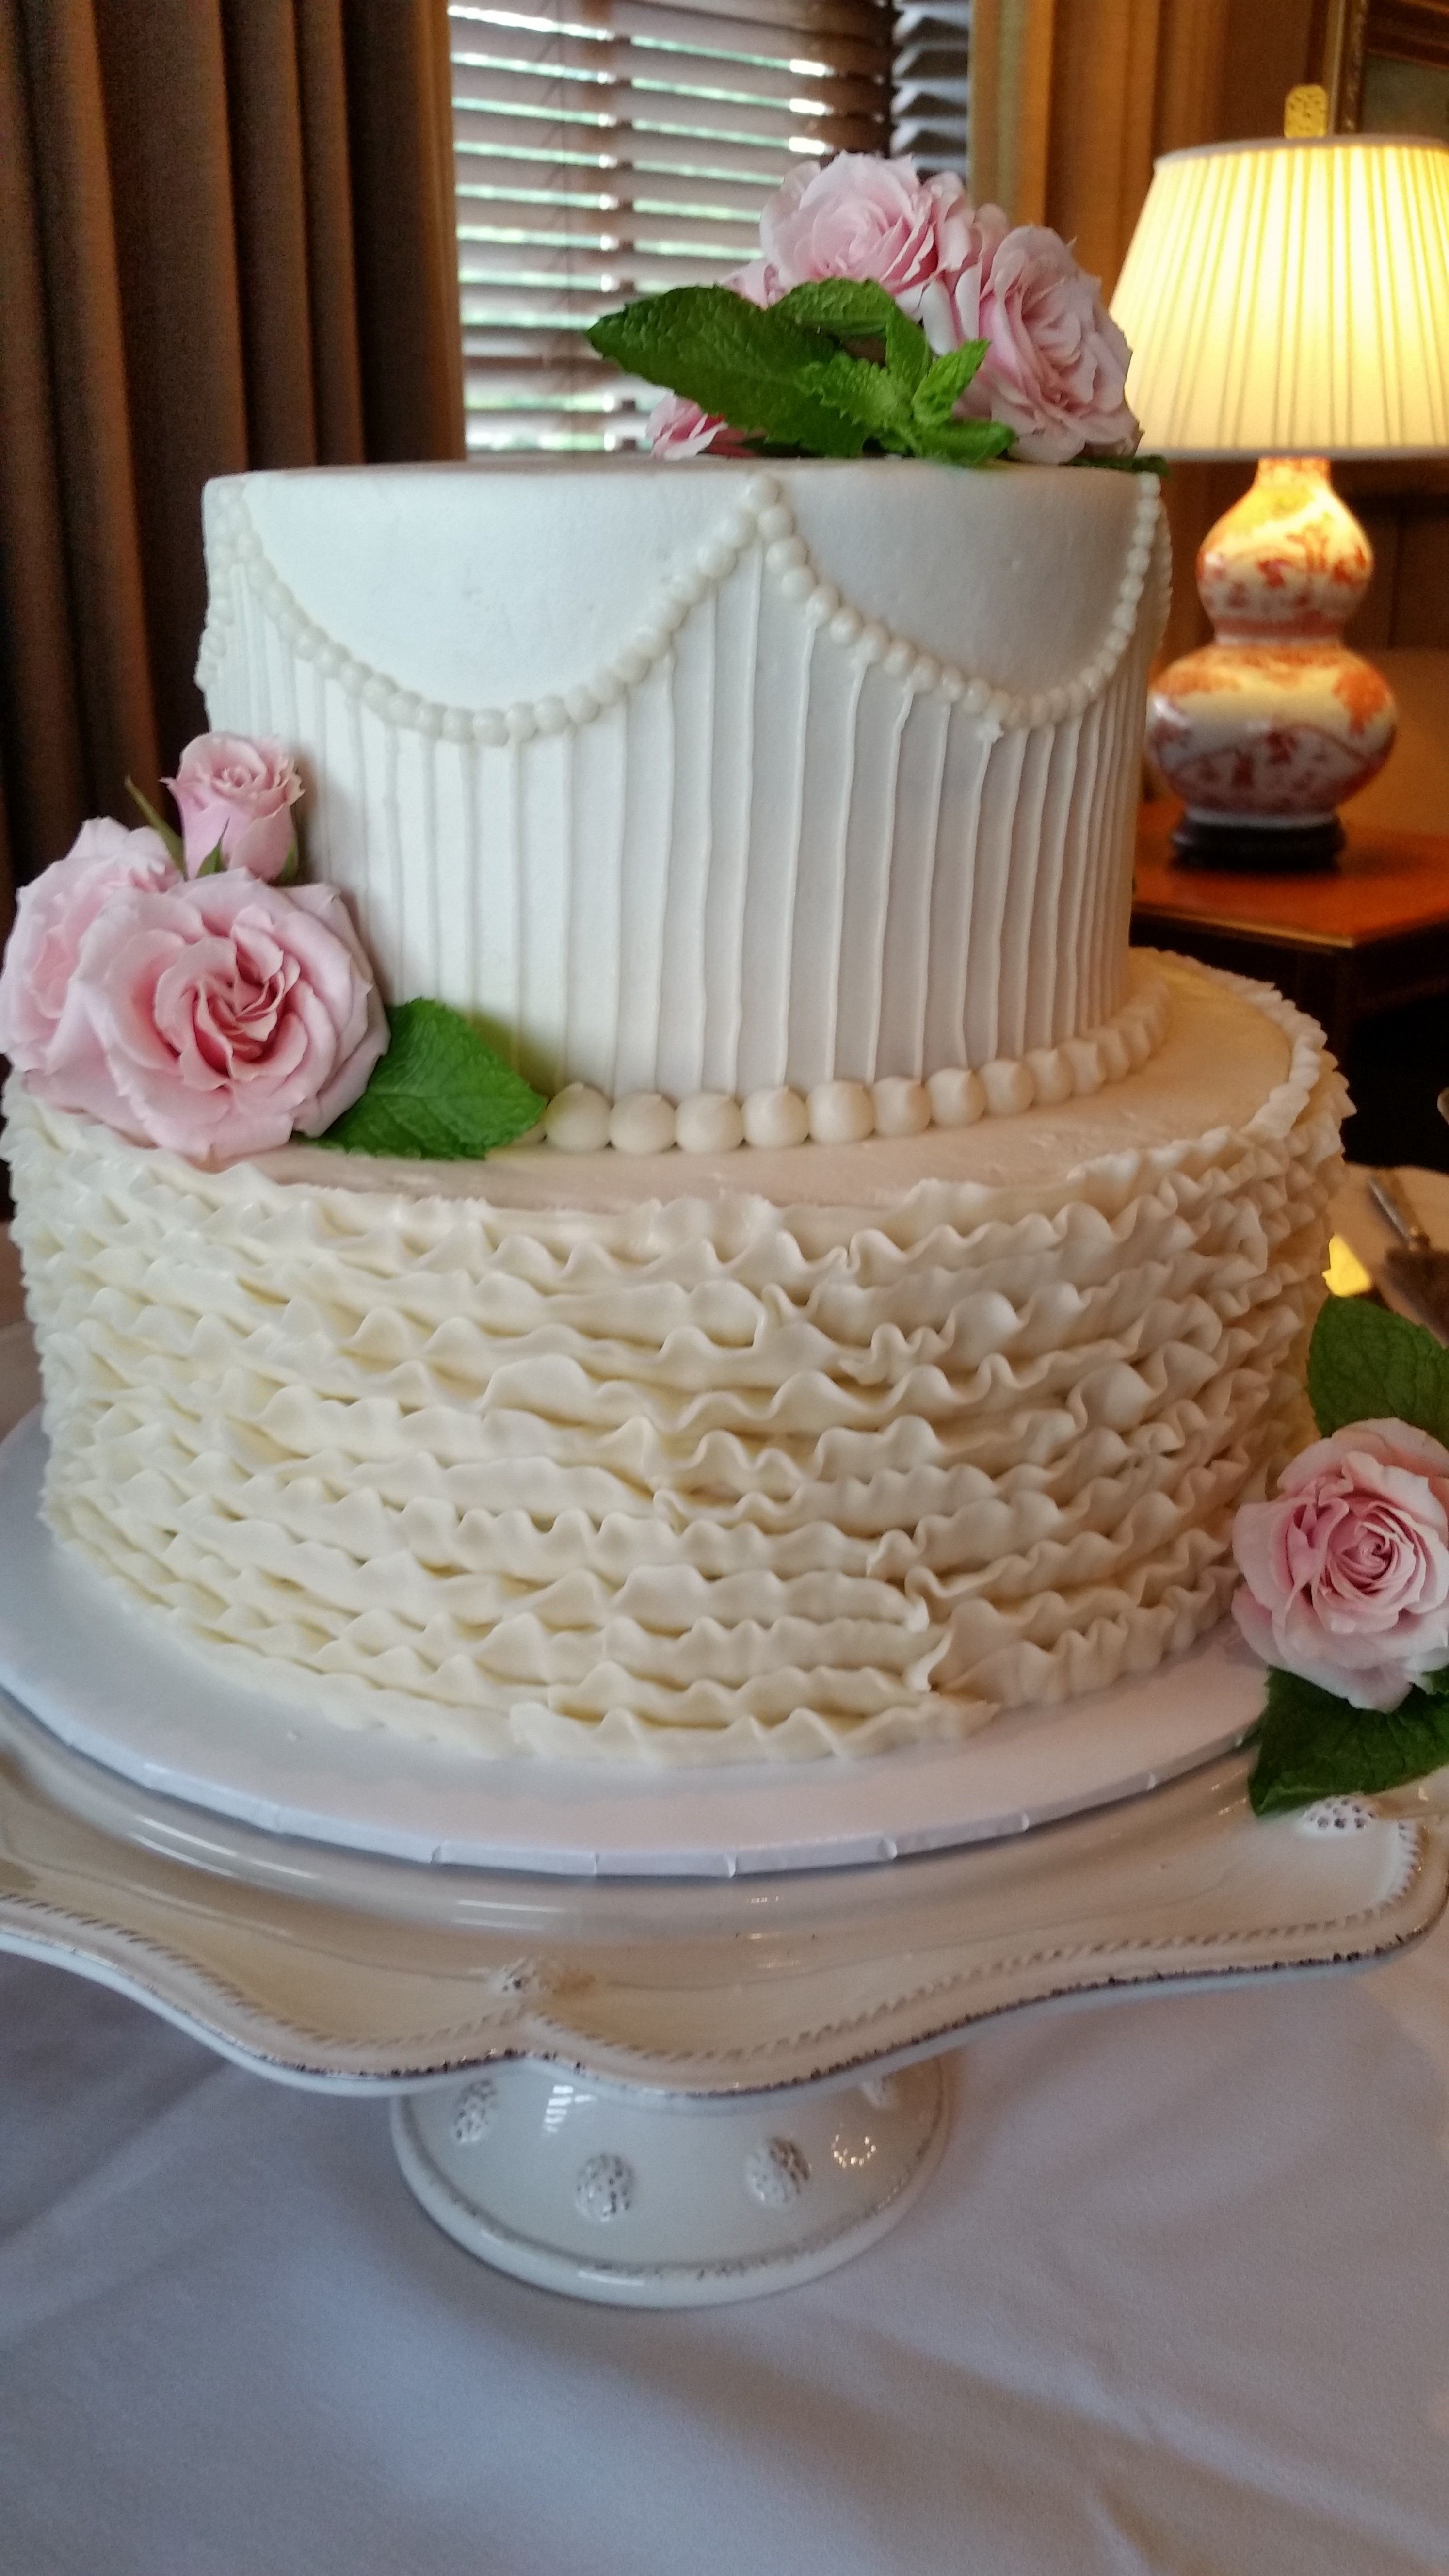 Wedding Cake By Confectionate Cakes, Raleigh NC